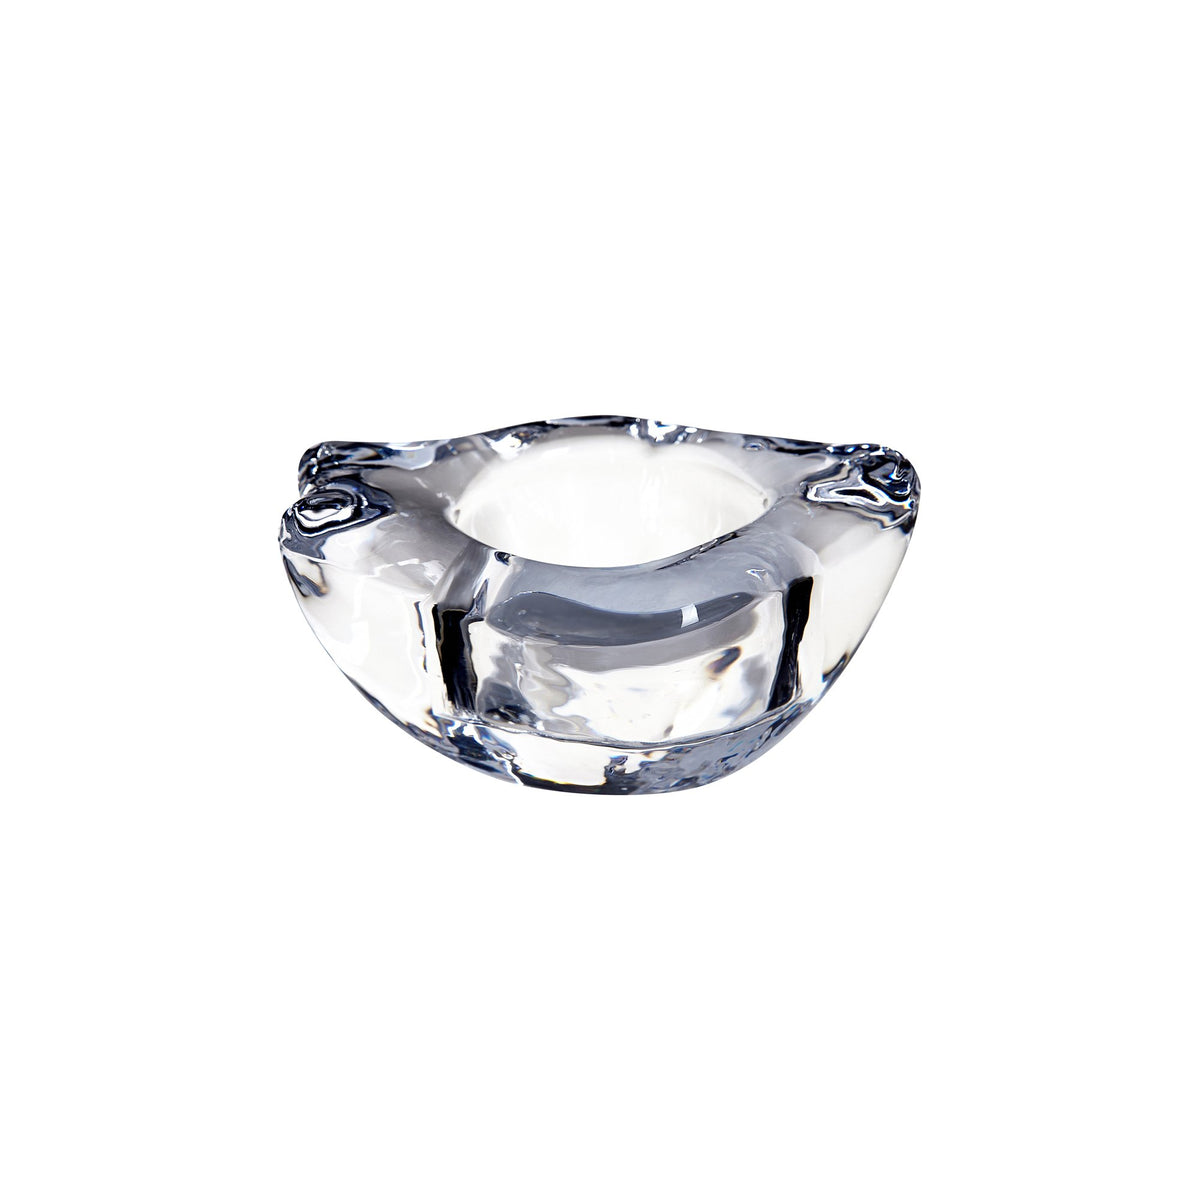 Stone Crystal Tea Light Holder